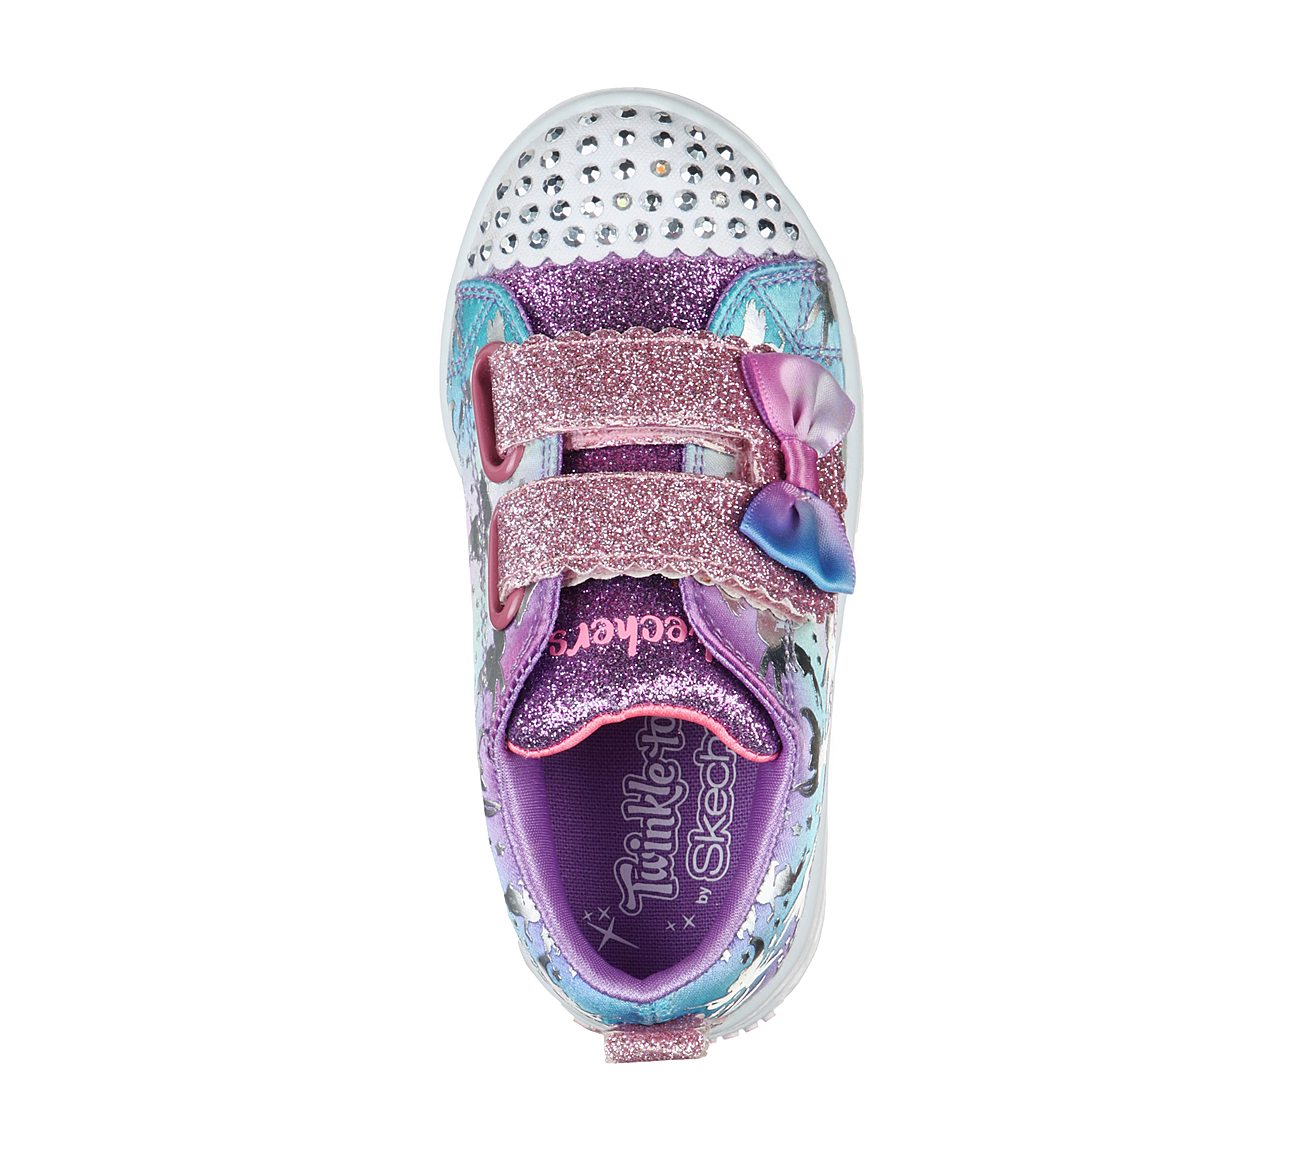 Twinkle Toes: Twi Lites Lil Fairy Wishes